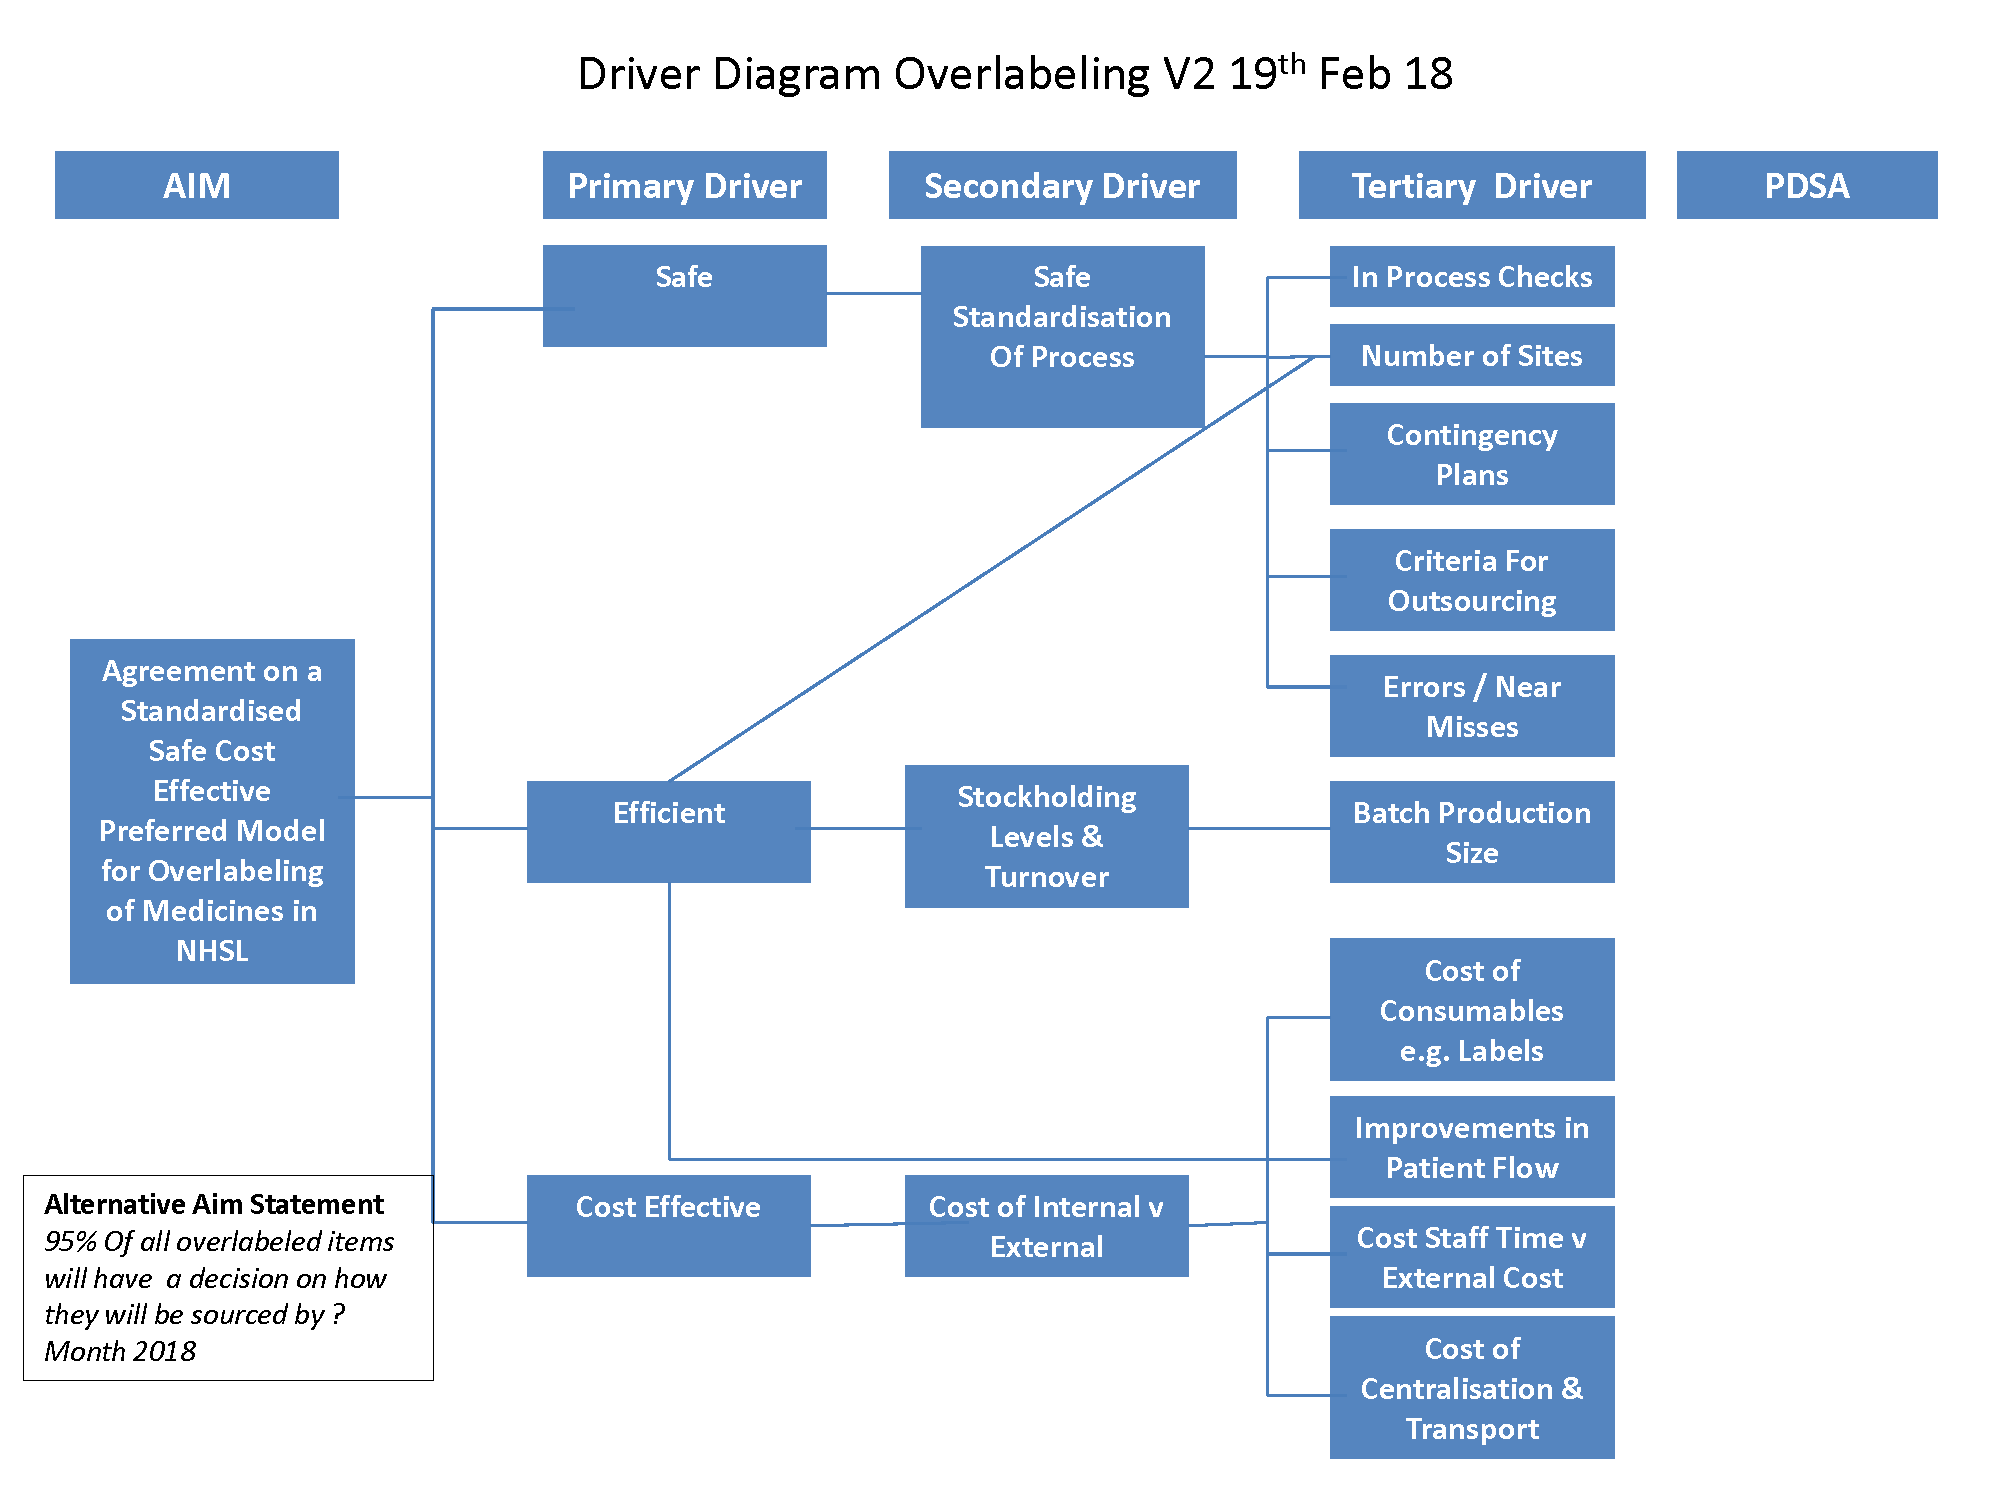 Driver Diagram Overlabeling V2 Updated after engagement Event 19th Feb 18.png